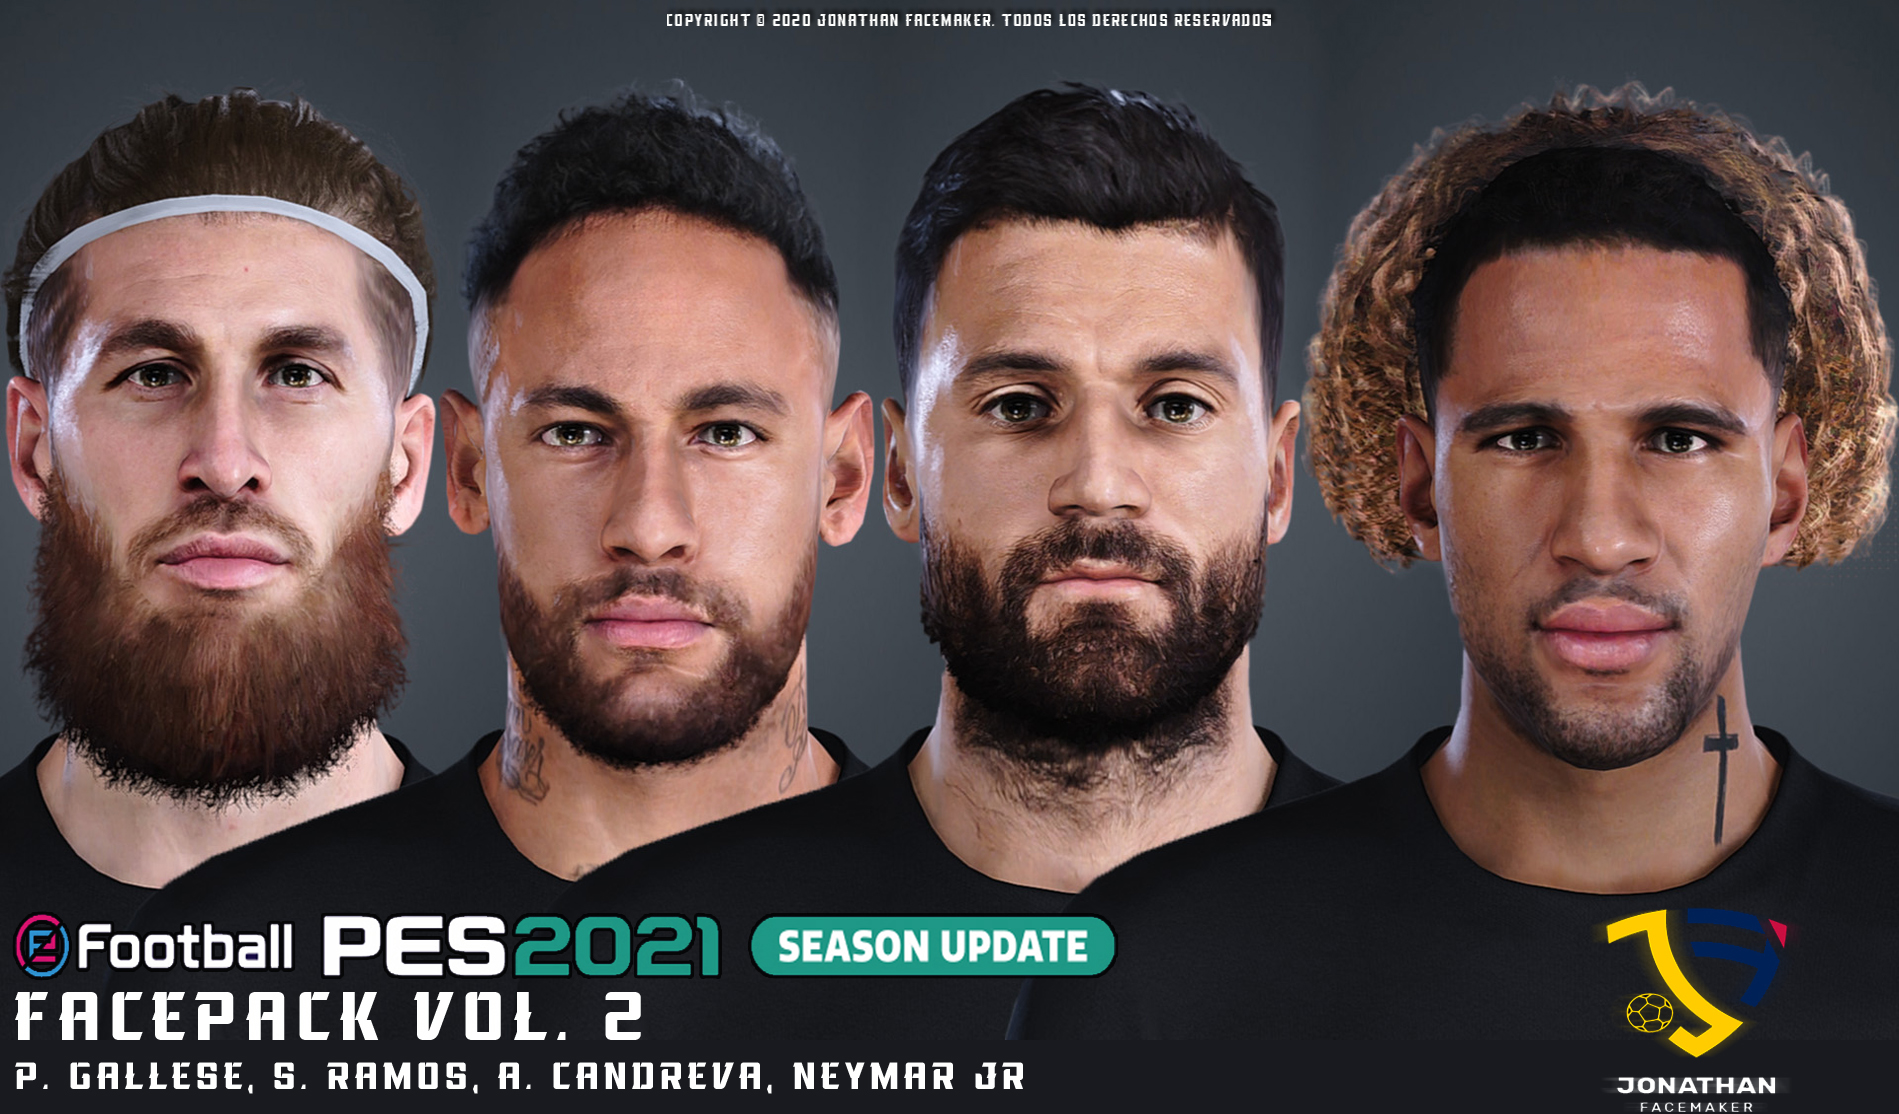 PES 2021 Facepack Vol.2 by Jonathan Facemaker